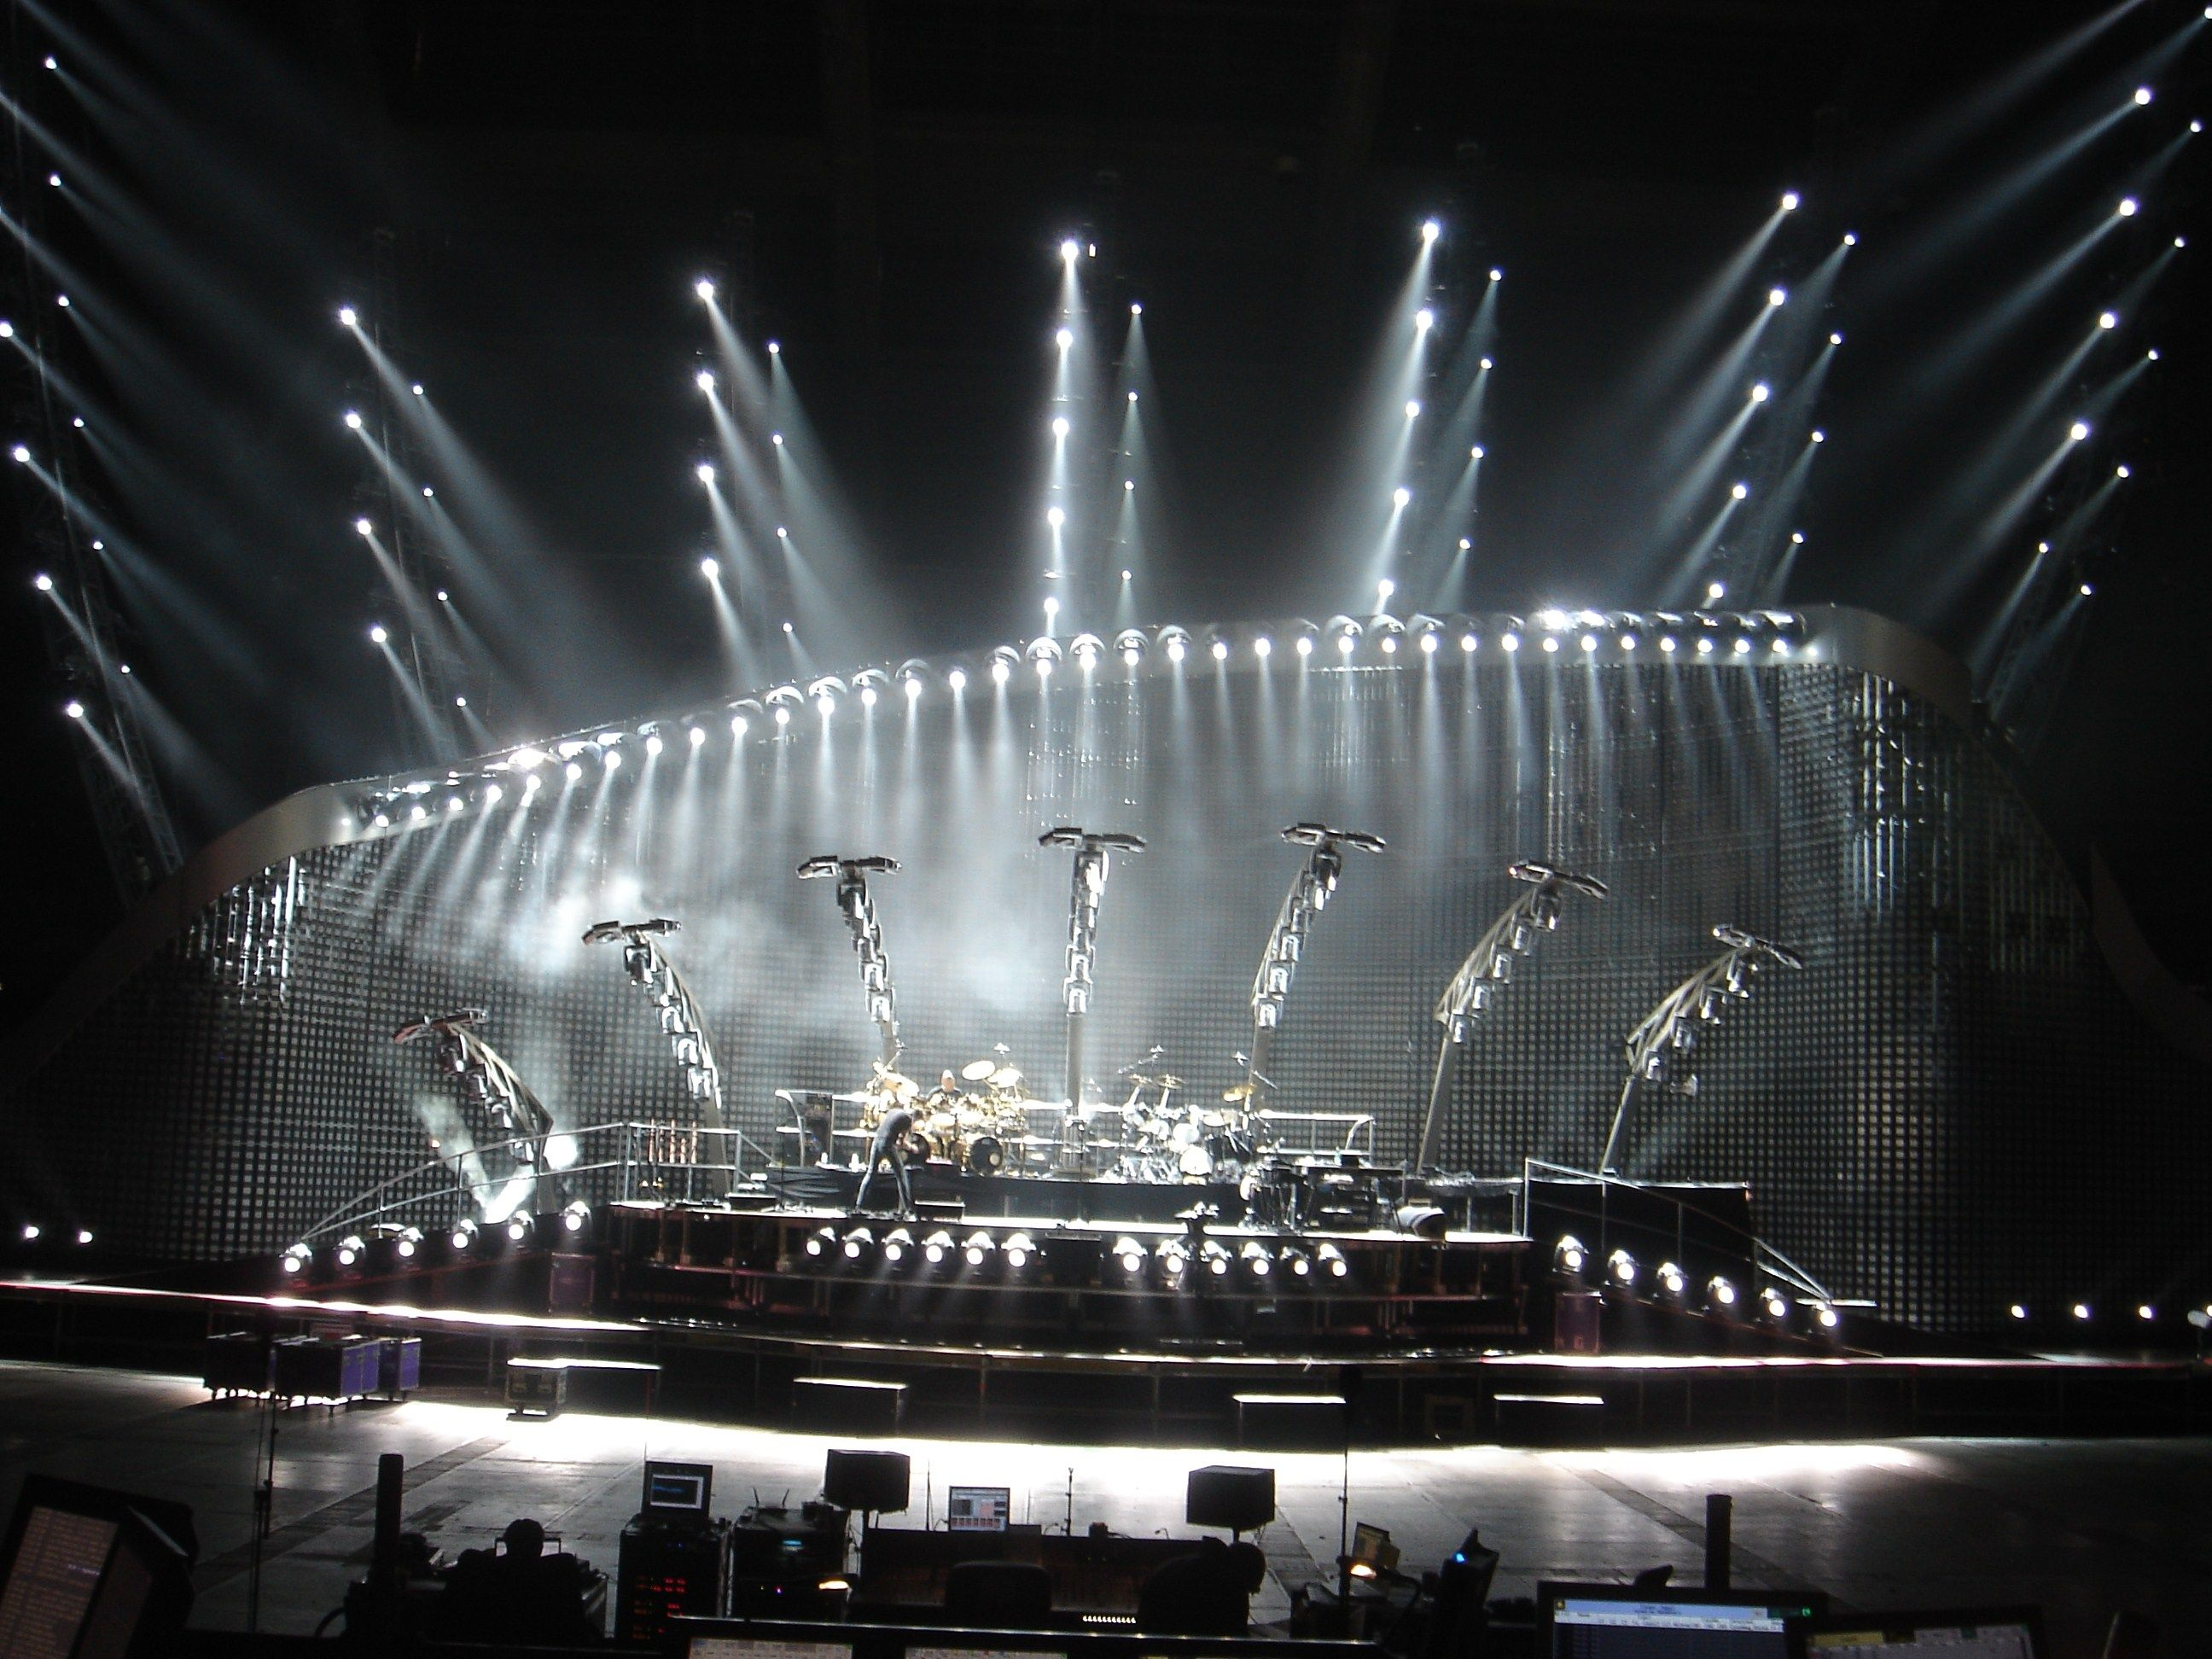 Genesis Stage Moving Light Design Projects To Try